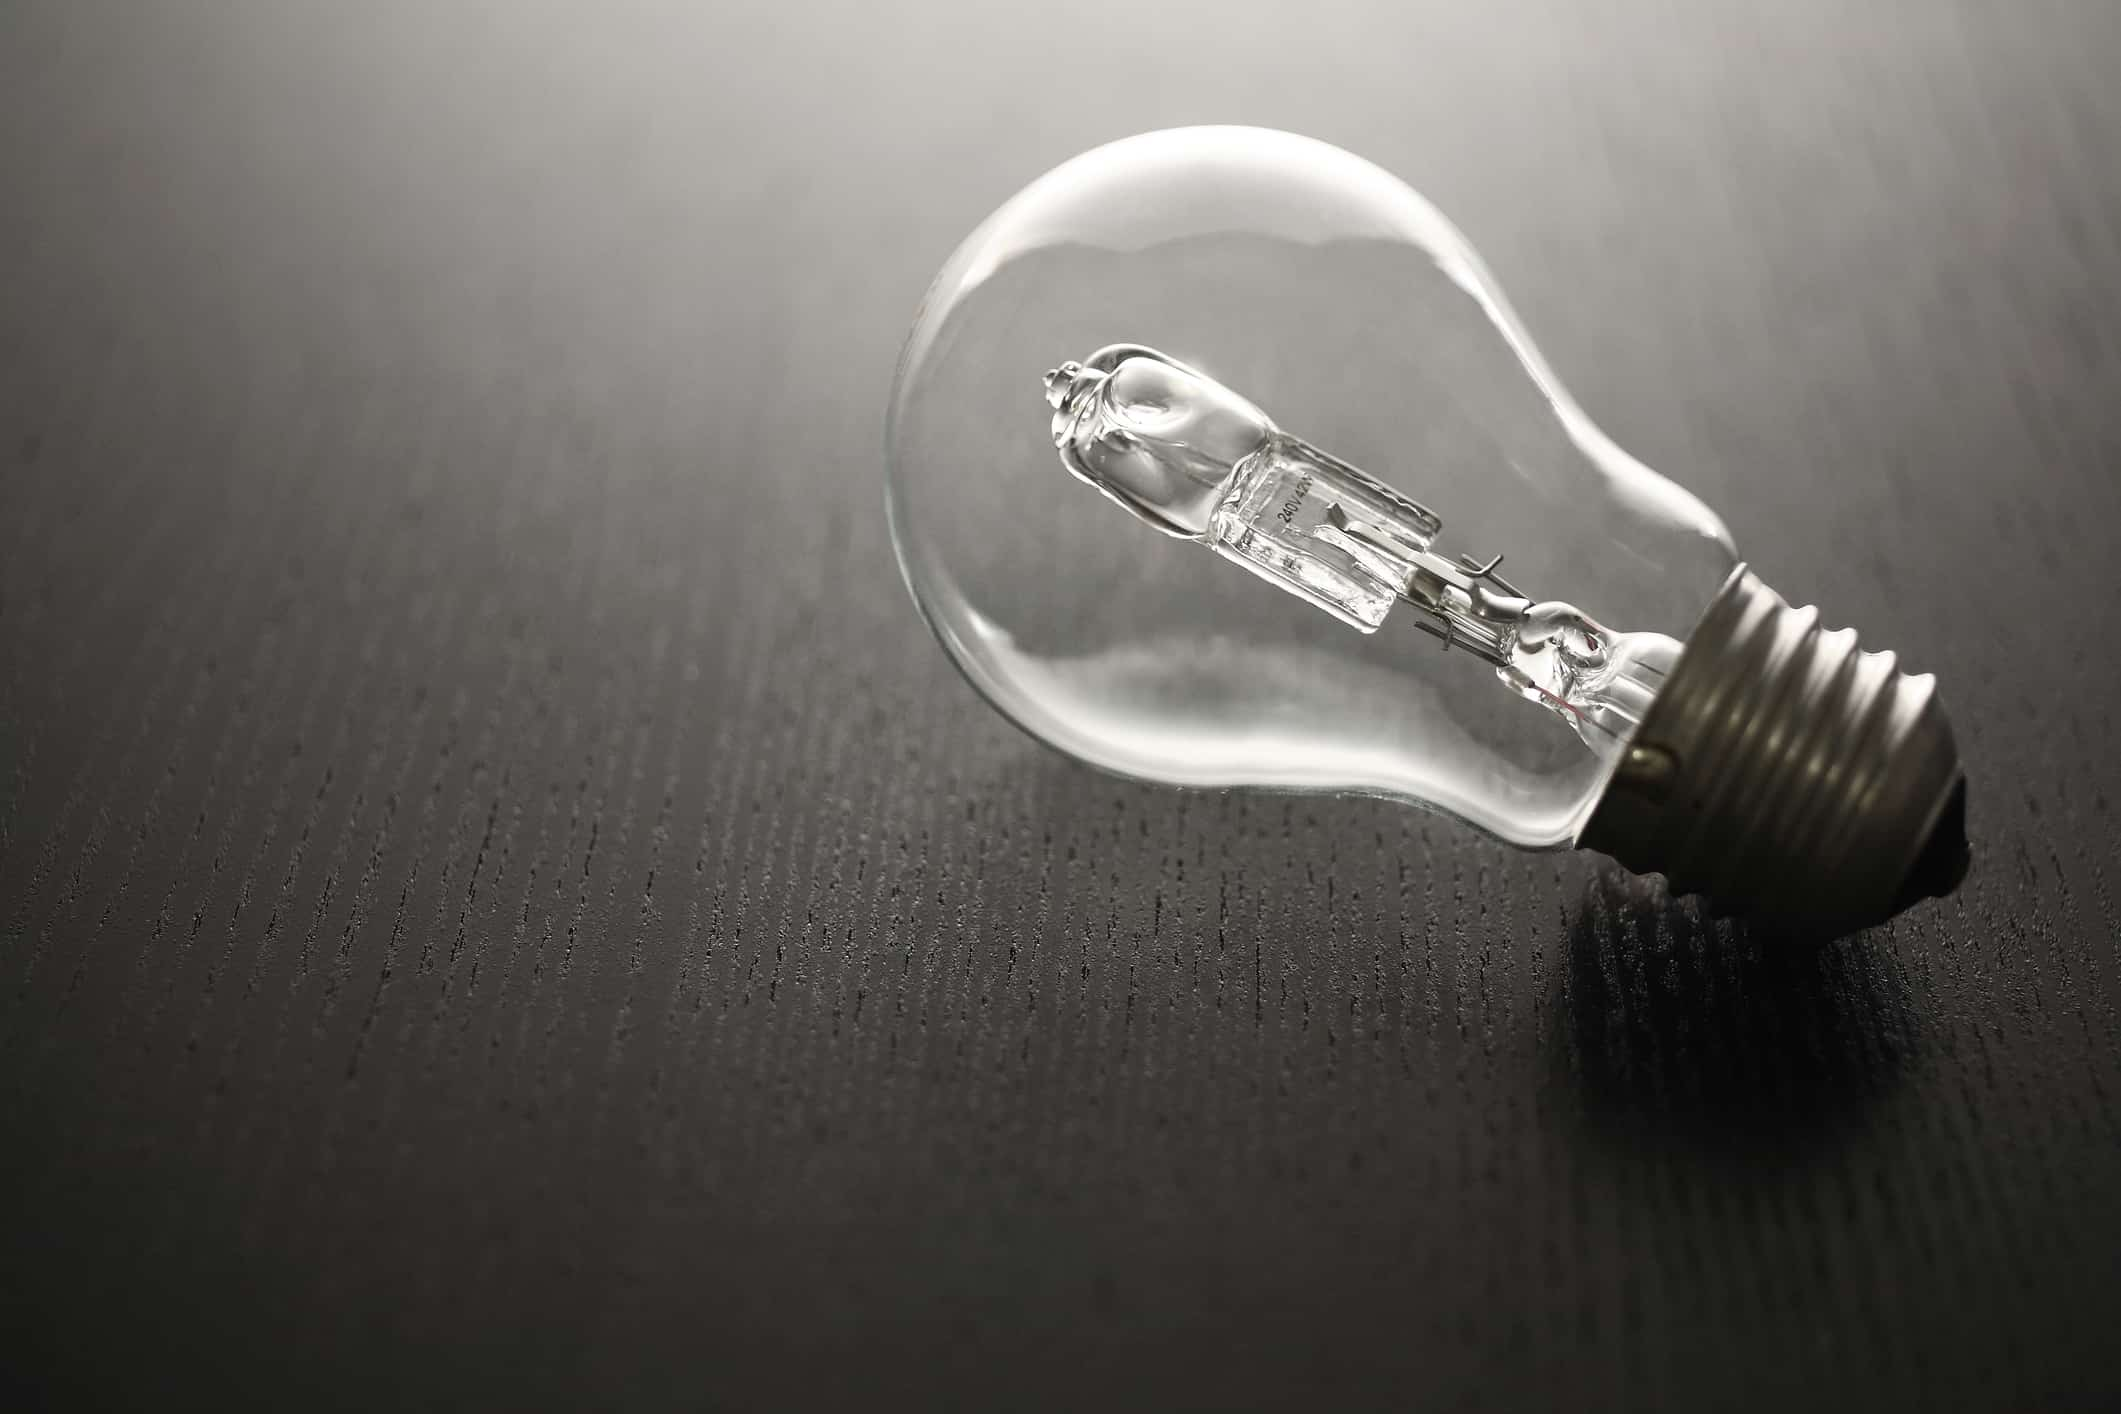 Full EU Ban on Halogen Bulbs to Take Effect From September 1